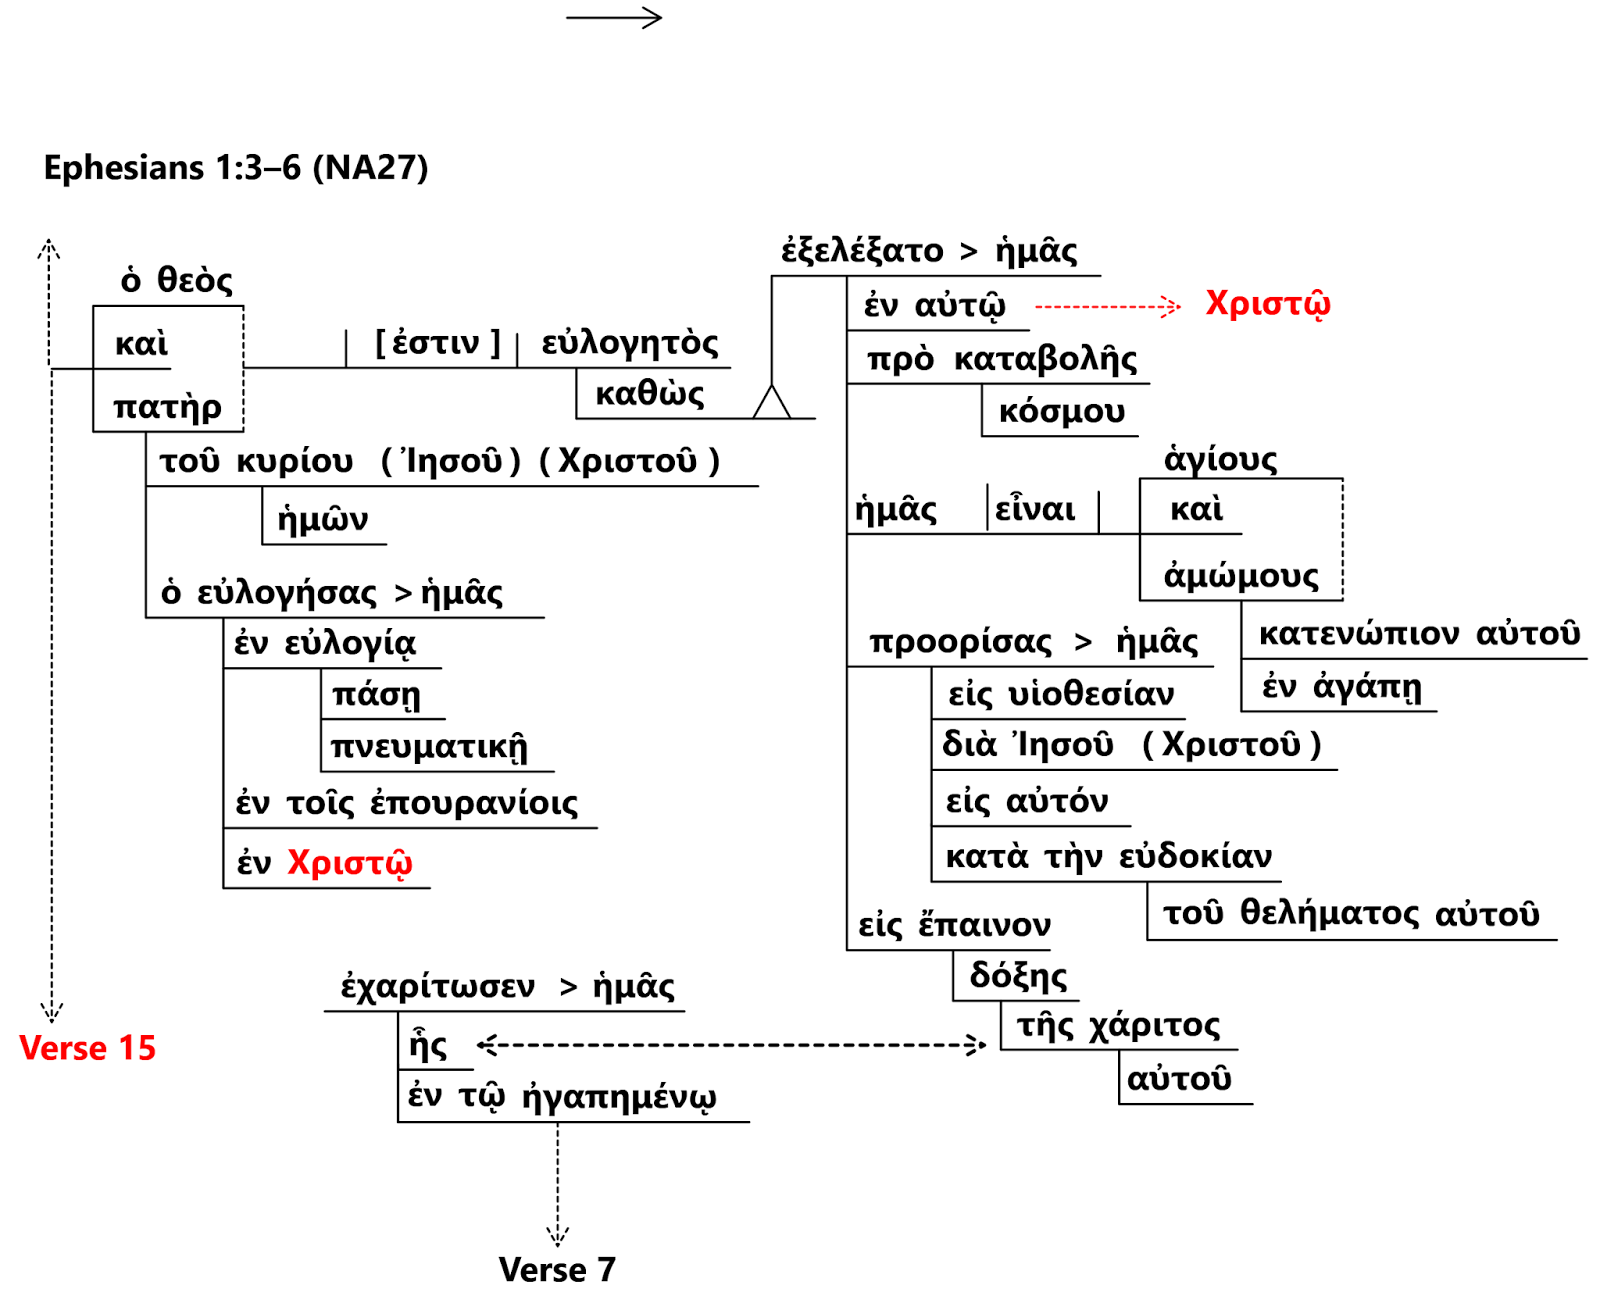 hight resolution of biblical languages and bible translations ephesians 1 2 6 diagram of ephesians